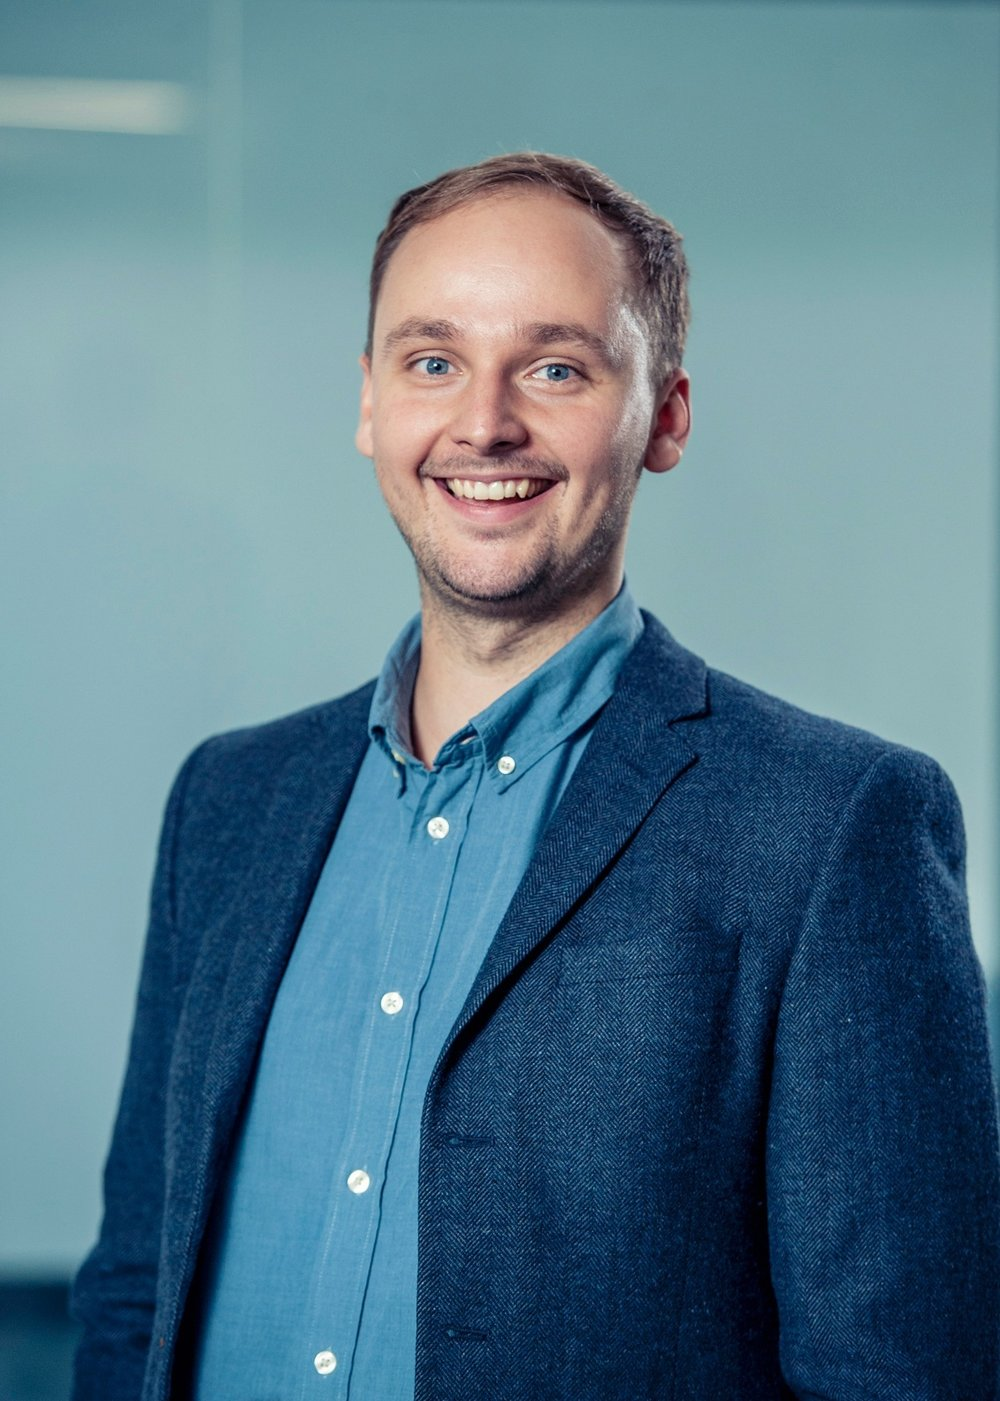 """""""We're thrilled to help Wandoo leverage the possibilities of Open Banking to their advantage. """"Better data categorisation means approving more creditworthy customers and having fewer defaults, which benefits the entire fintech industry. We're glad to be part of Wandoo's success,"""" says Nordigen CEO Rolands Mesters. -"""